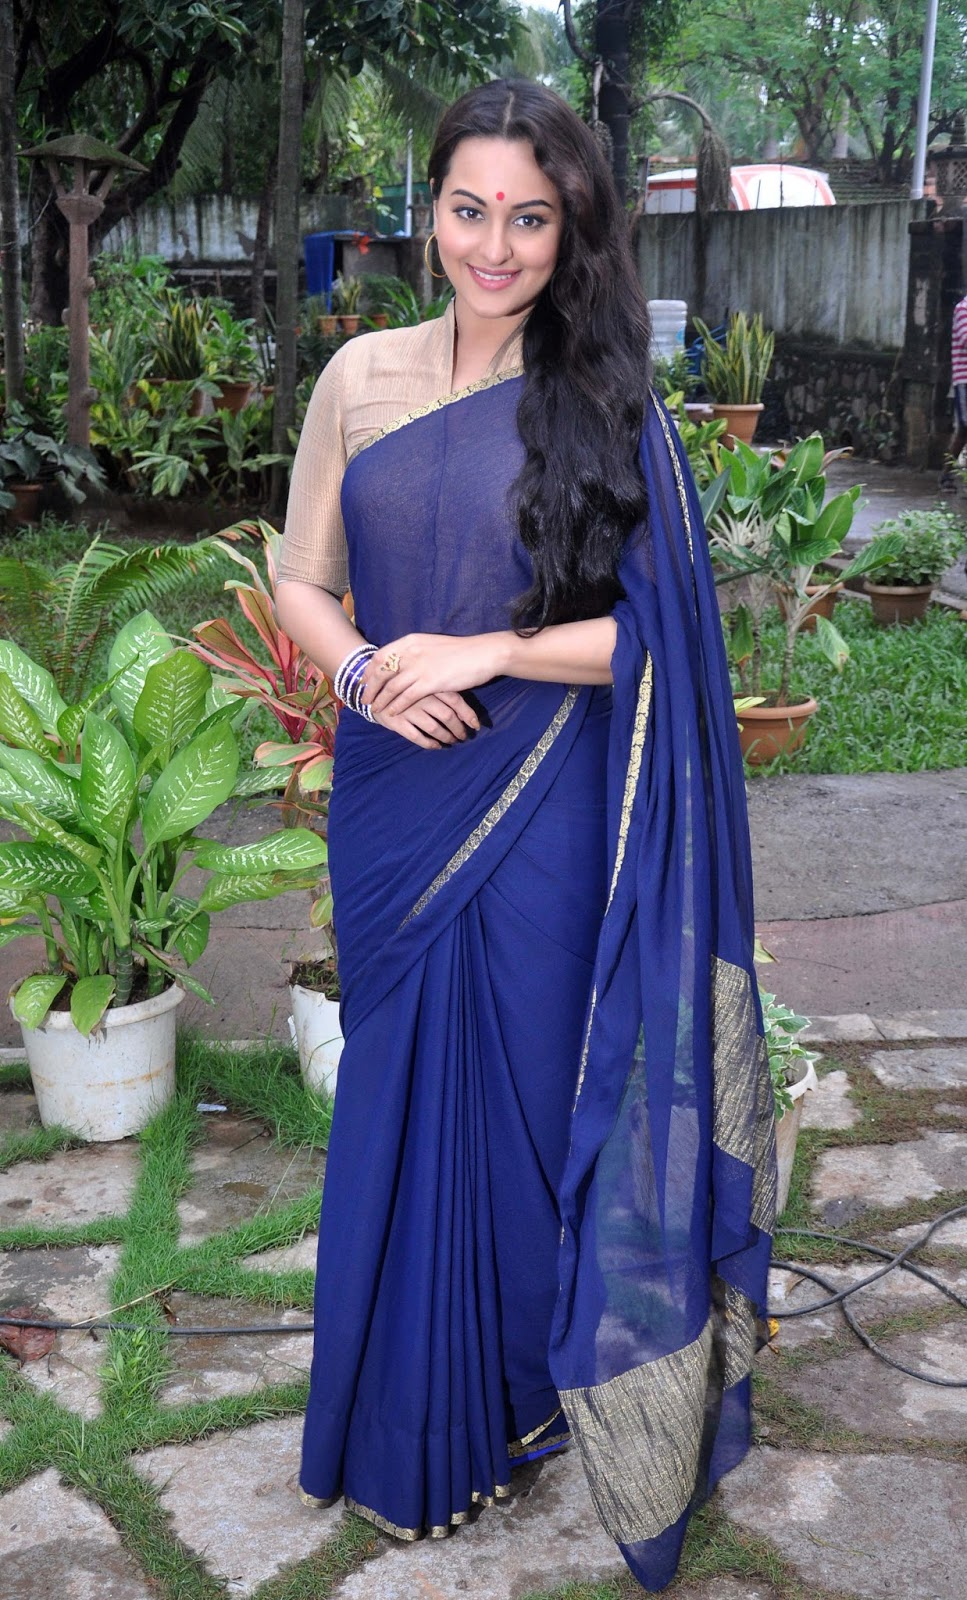 Bollywood Hot Actress Sonakshi Sinha Hip Navel Show Stills In Blue Saree